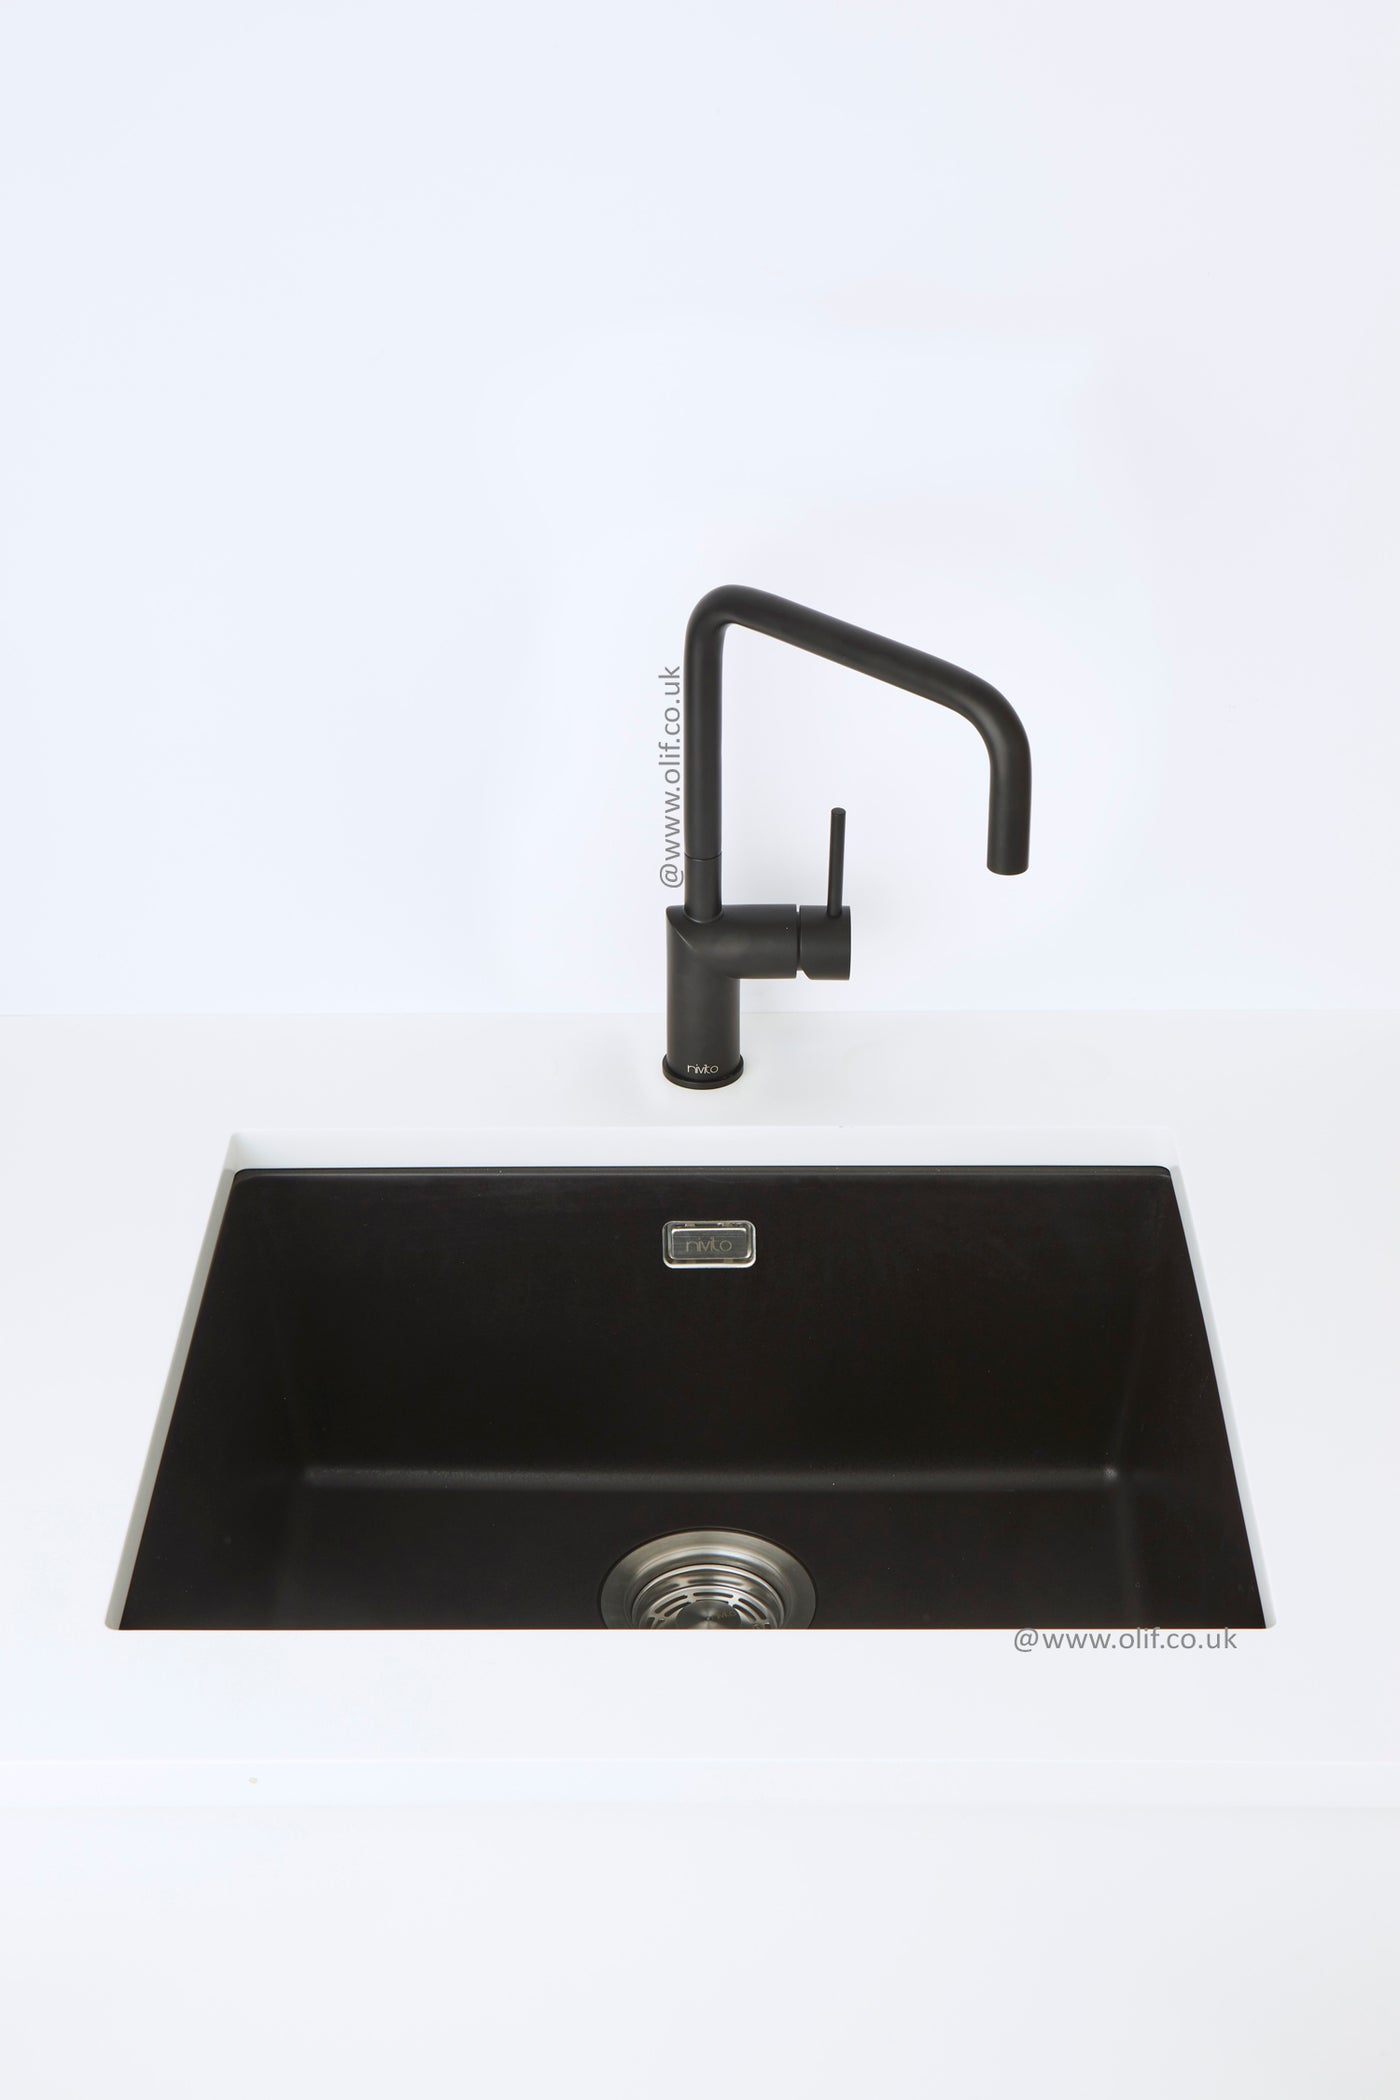 Pure Black Granite Kitchen Sink Under Or Top Mount Nivito Cubegranit 500 Black Olif